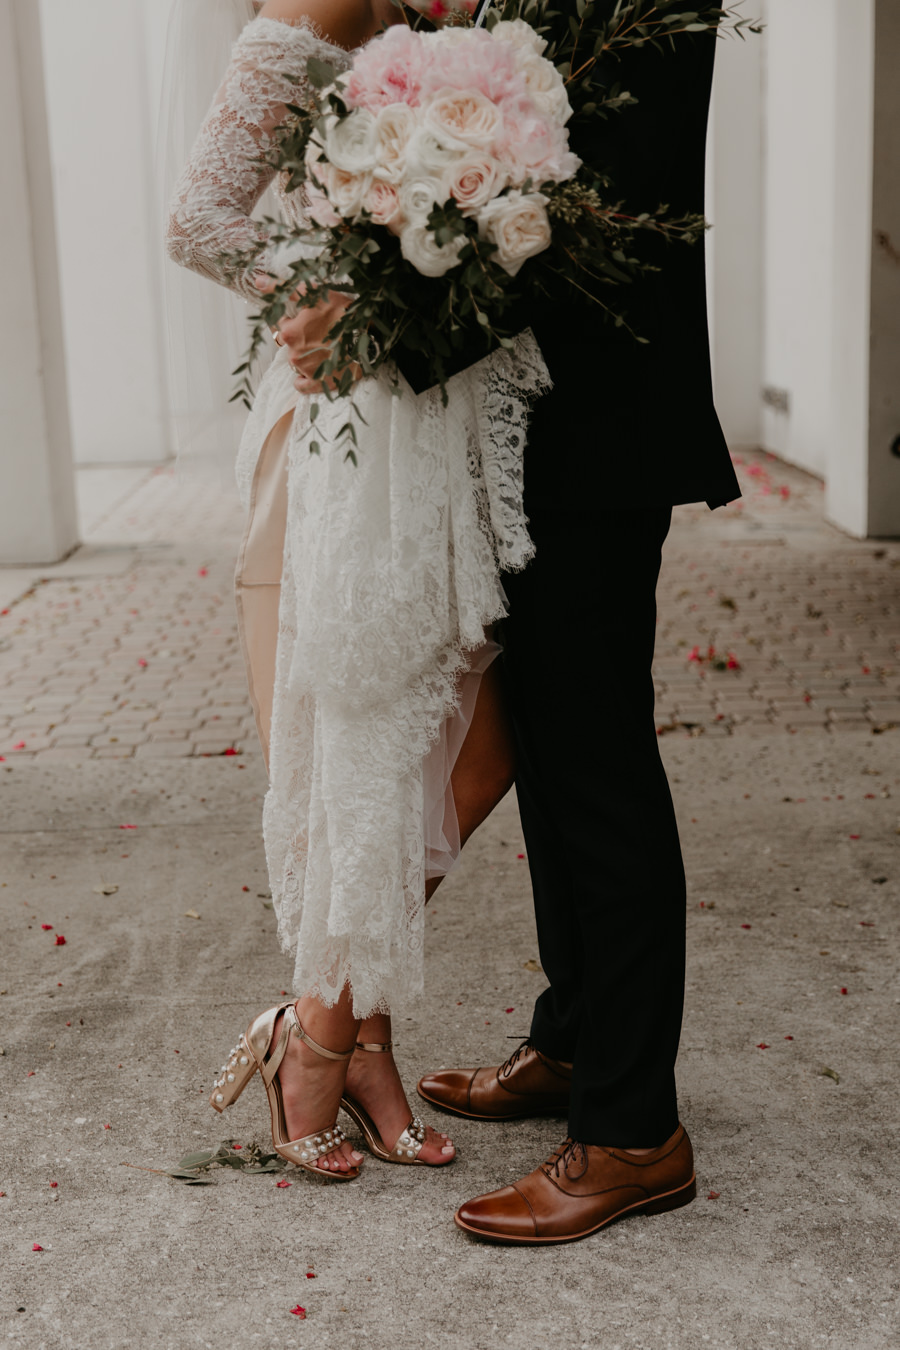 Neely rose gold boho wedding in st pete vinoy A and be Miami first baptist of st pete park shore grill Tampa Wedding Photographer -144.jpg